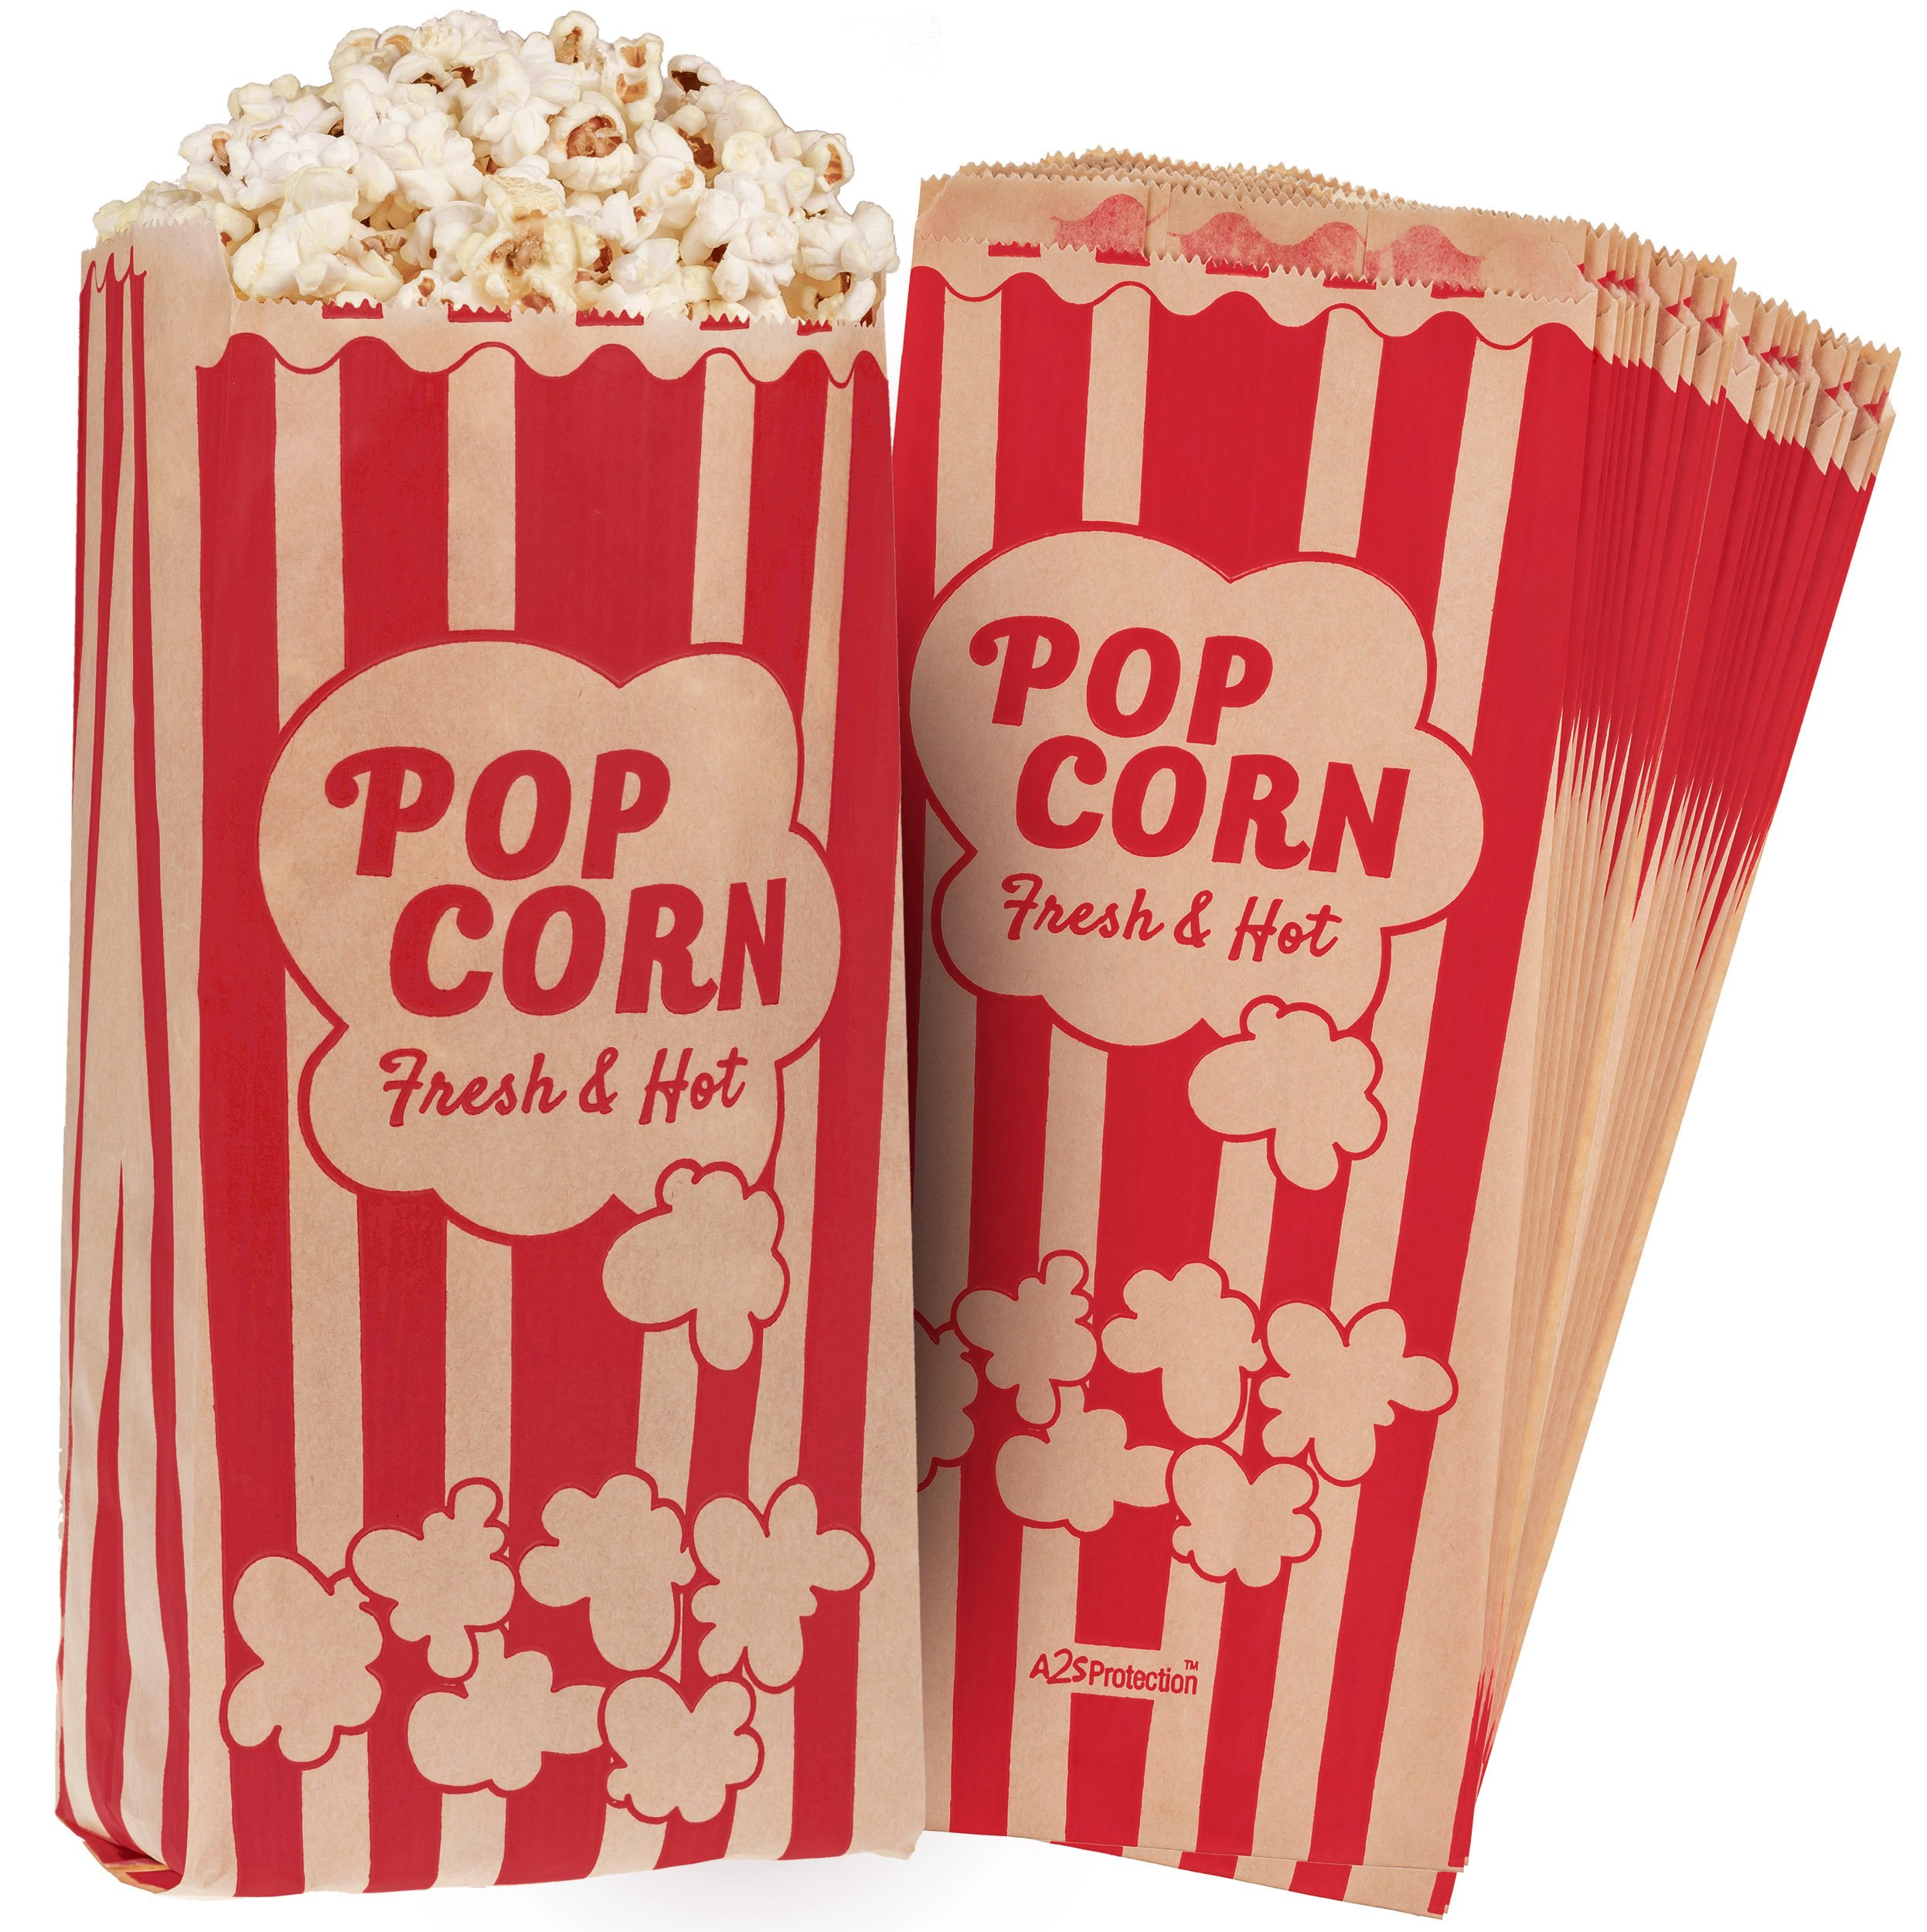 Paper Popcorn Bags 2oz 11 X 5 X 3'' Leak / Grease Proof Prevent of Salt Popcorn Seasoning Kernels & Pop Corn Oil to Drop - Vintage Retro - For any Popcorn Machine (Kraft / Red 11X5'' - 250 pcs set) by A2S Protection